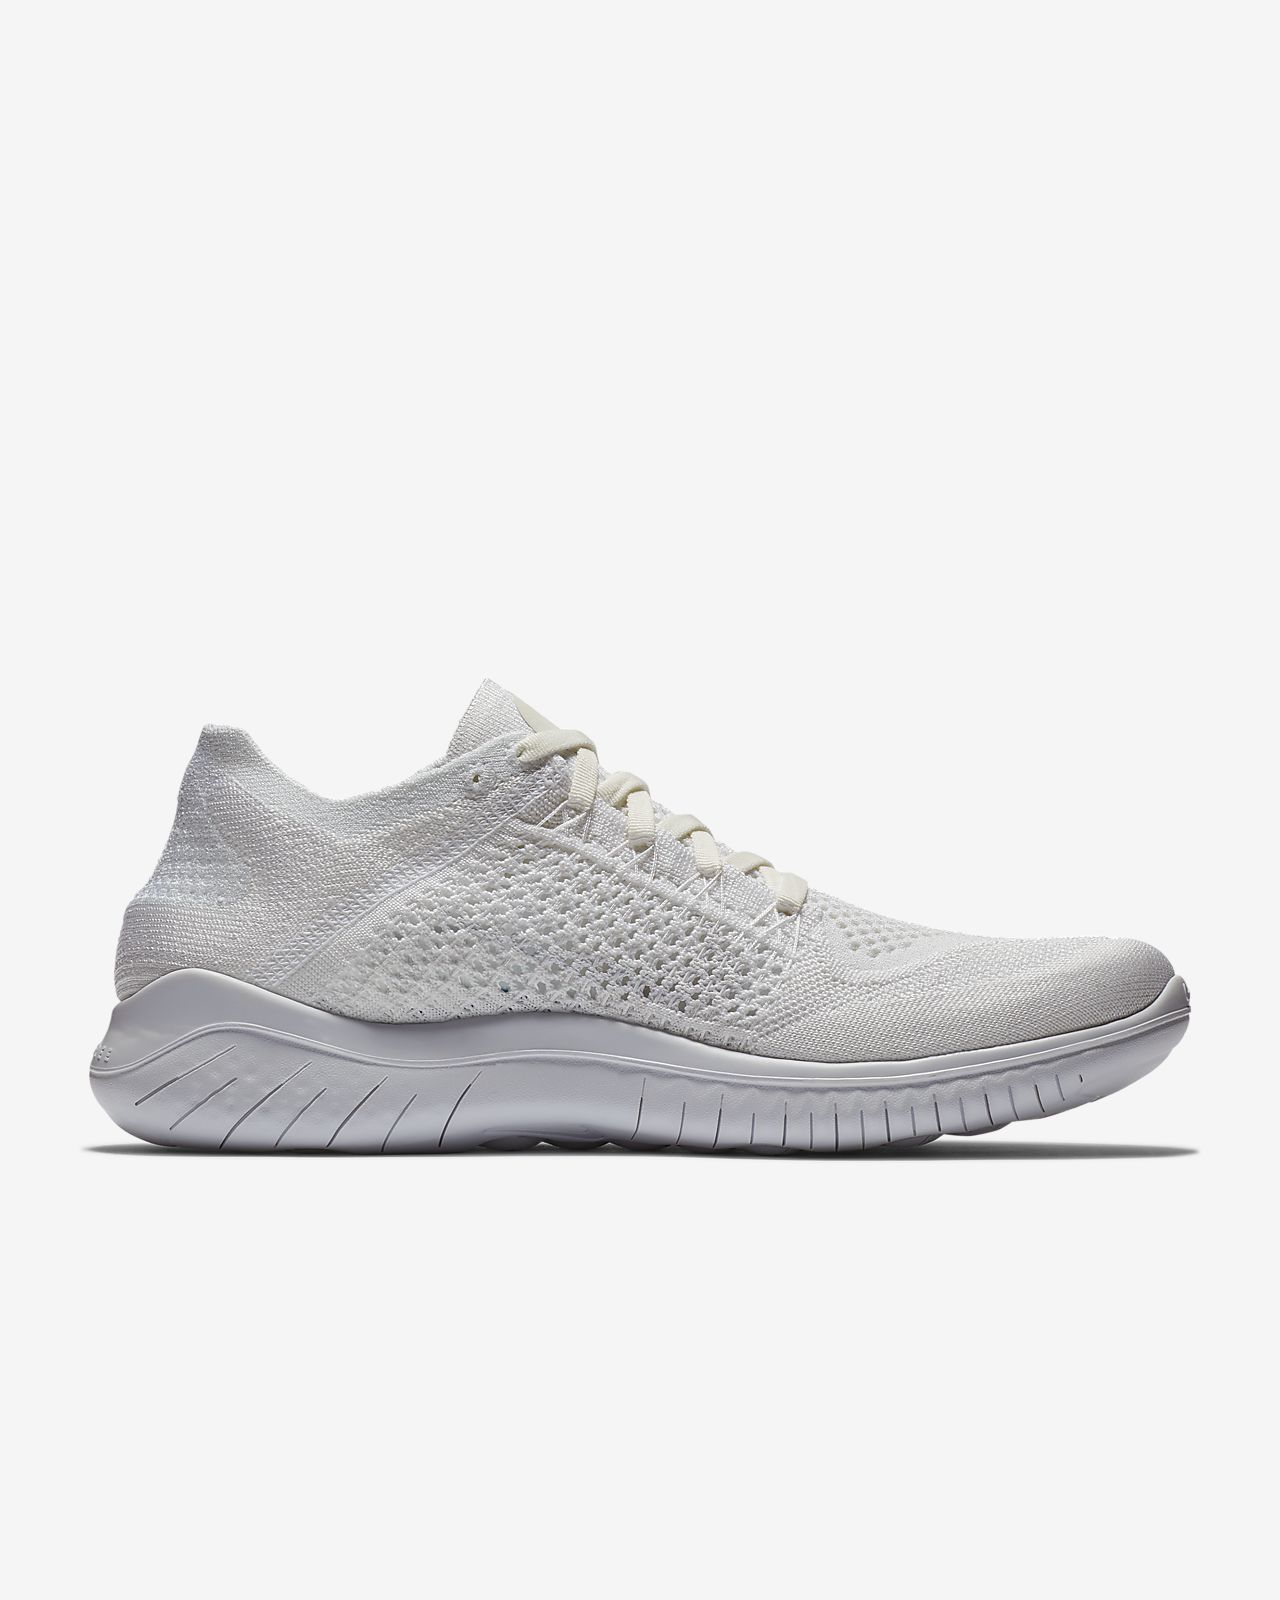 the best attitude 8a324 1014c ... Nike Free RN Flyknit 2018 Mens Running Shoe